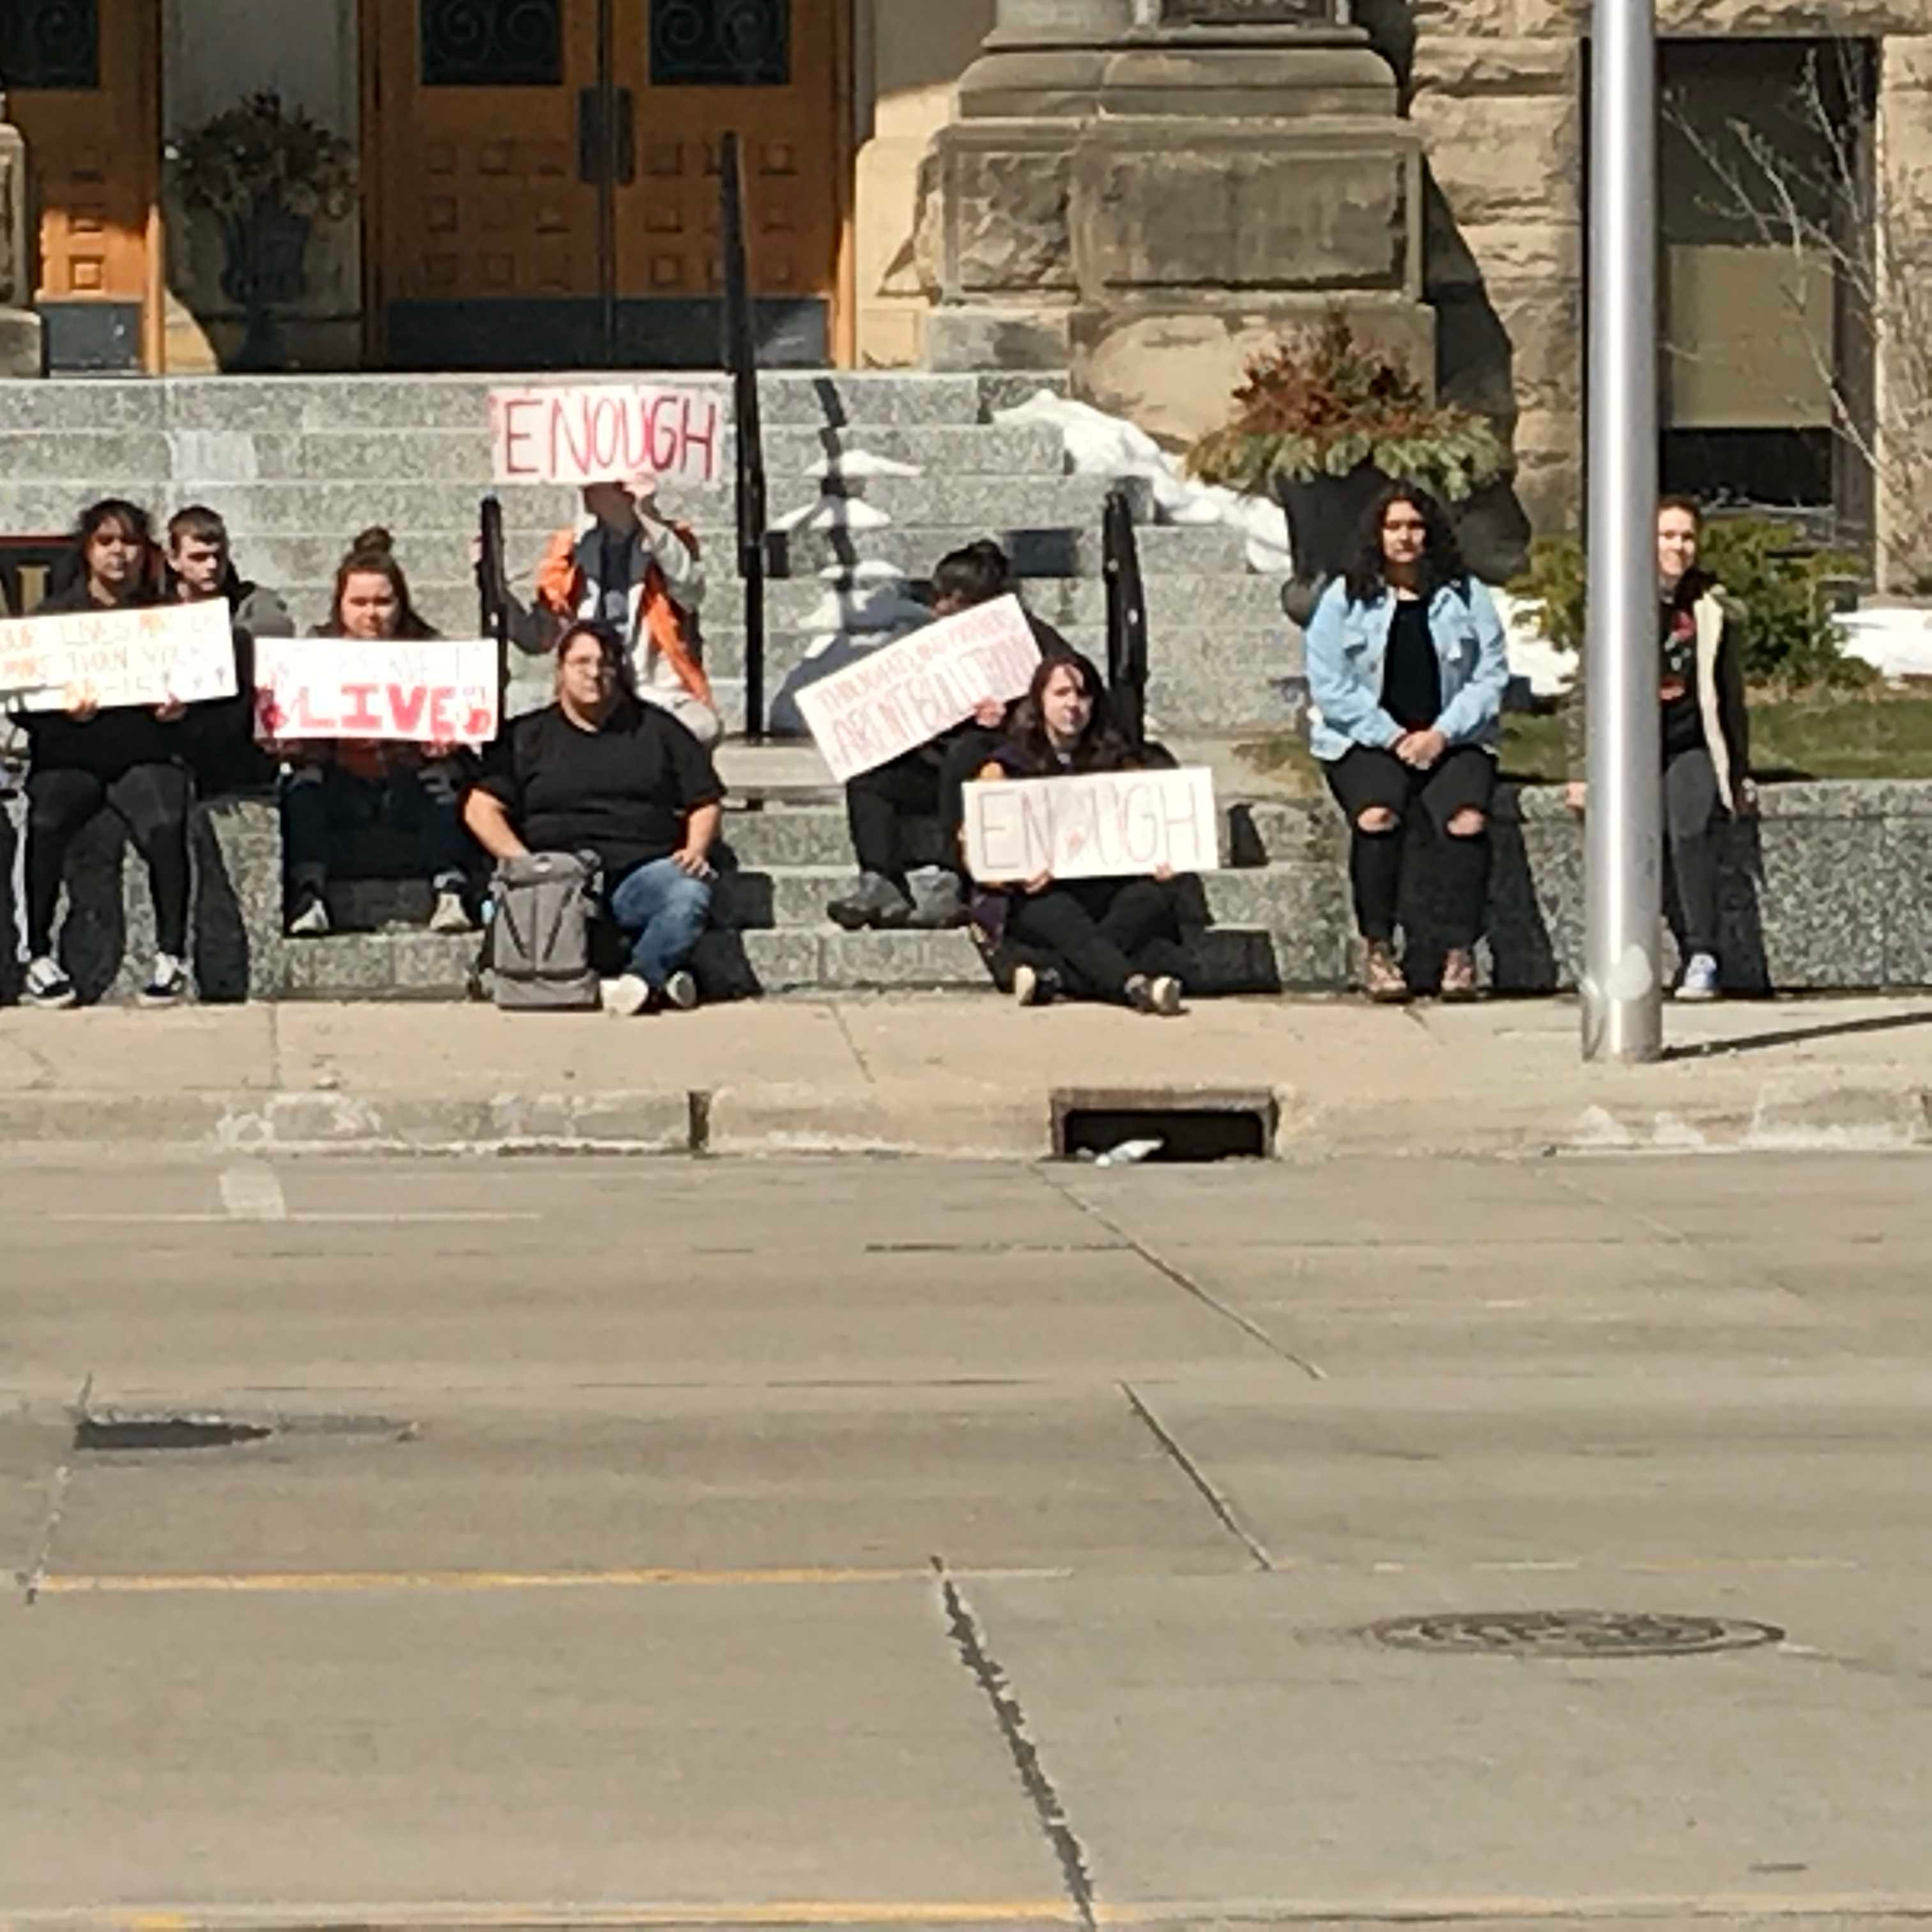 Protest at Bay City, City Hall (Source: WNEM)